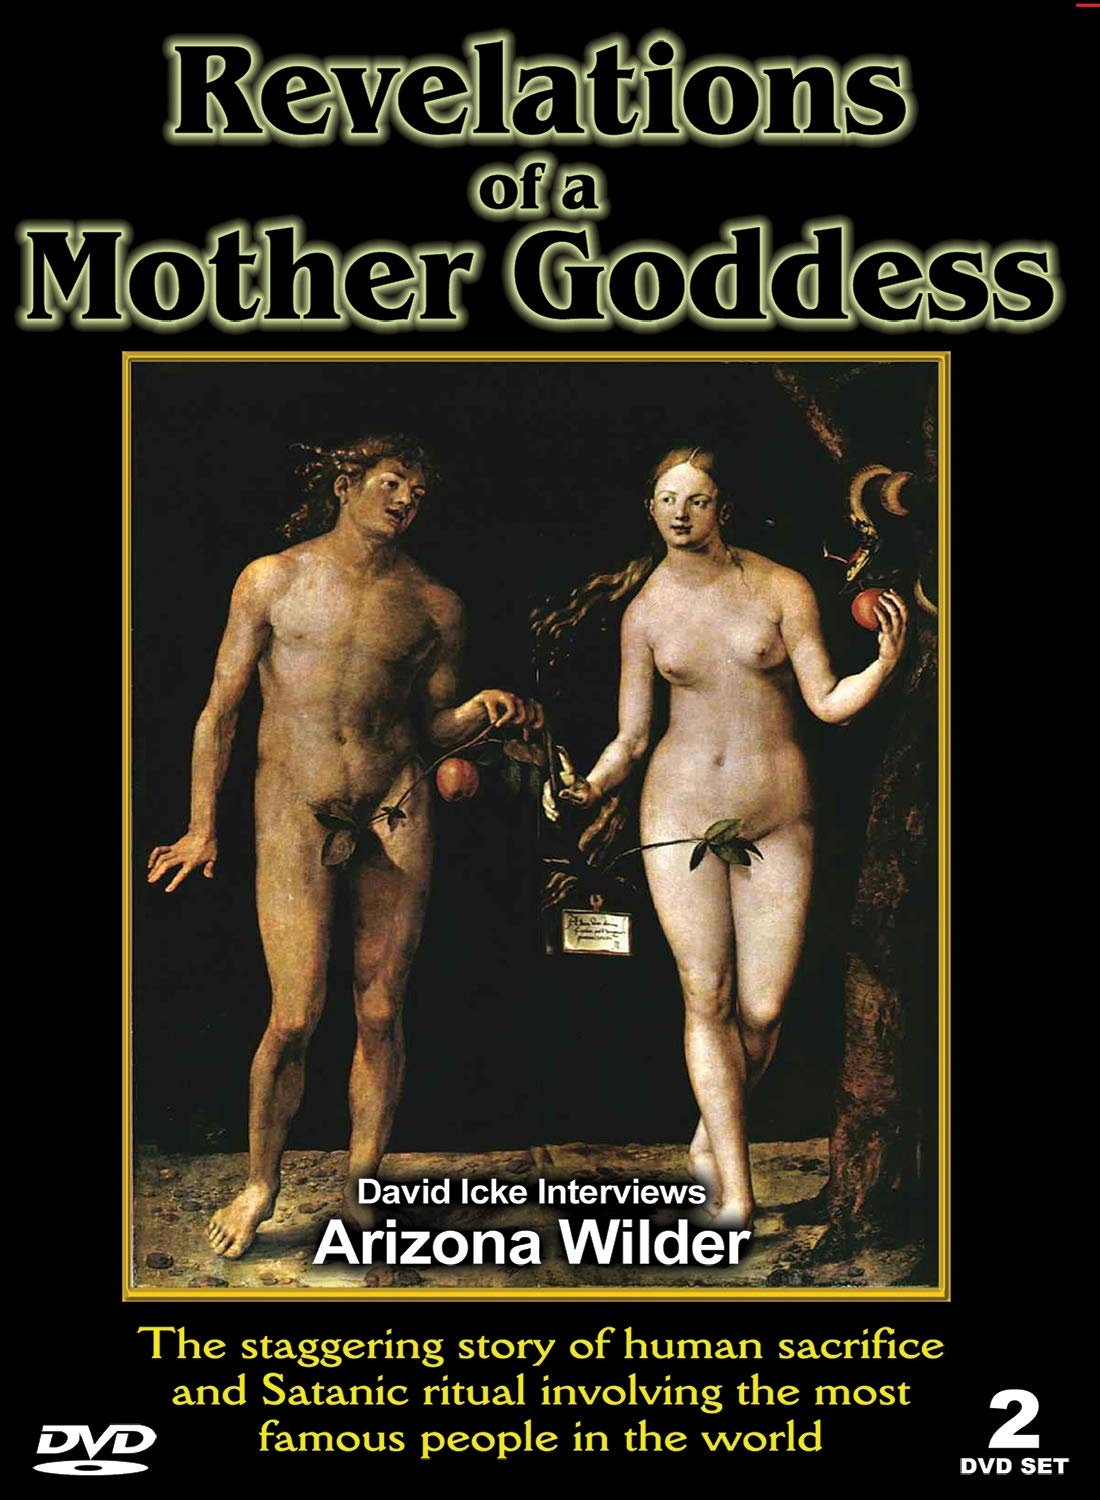 Arizona Wilder & David Icke